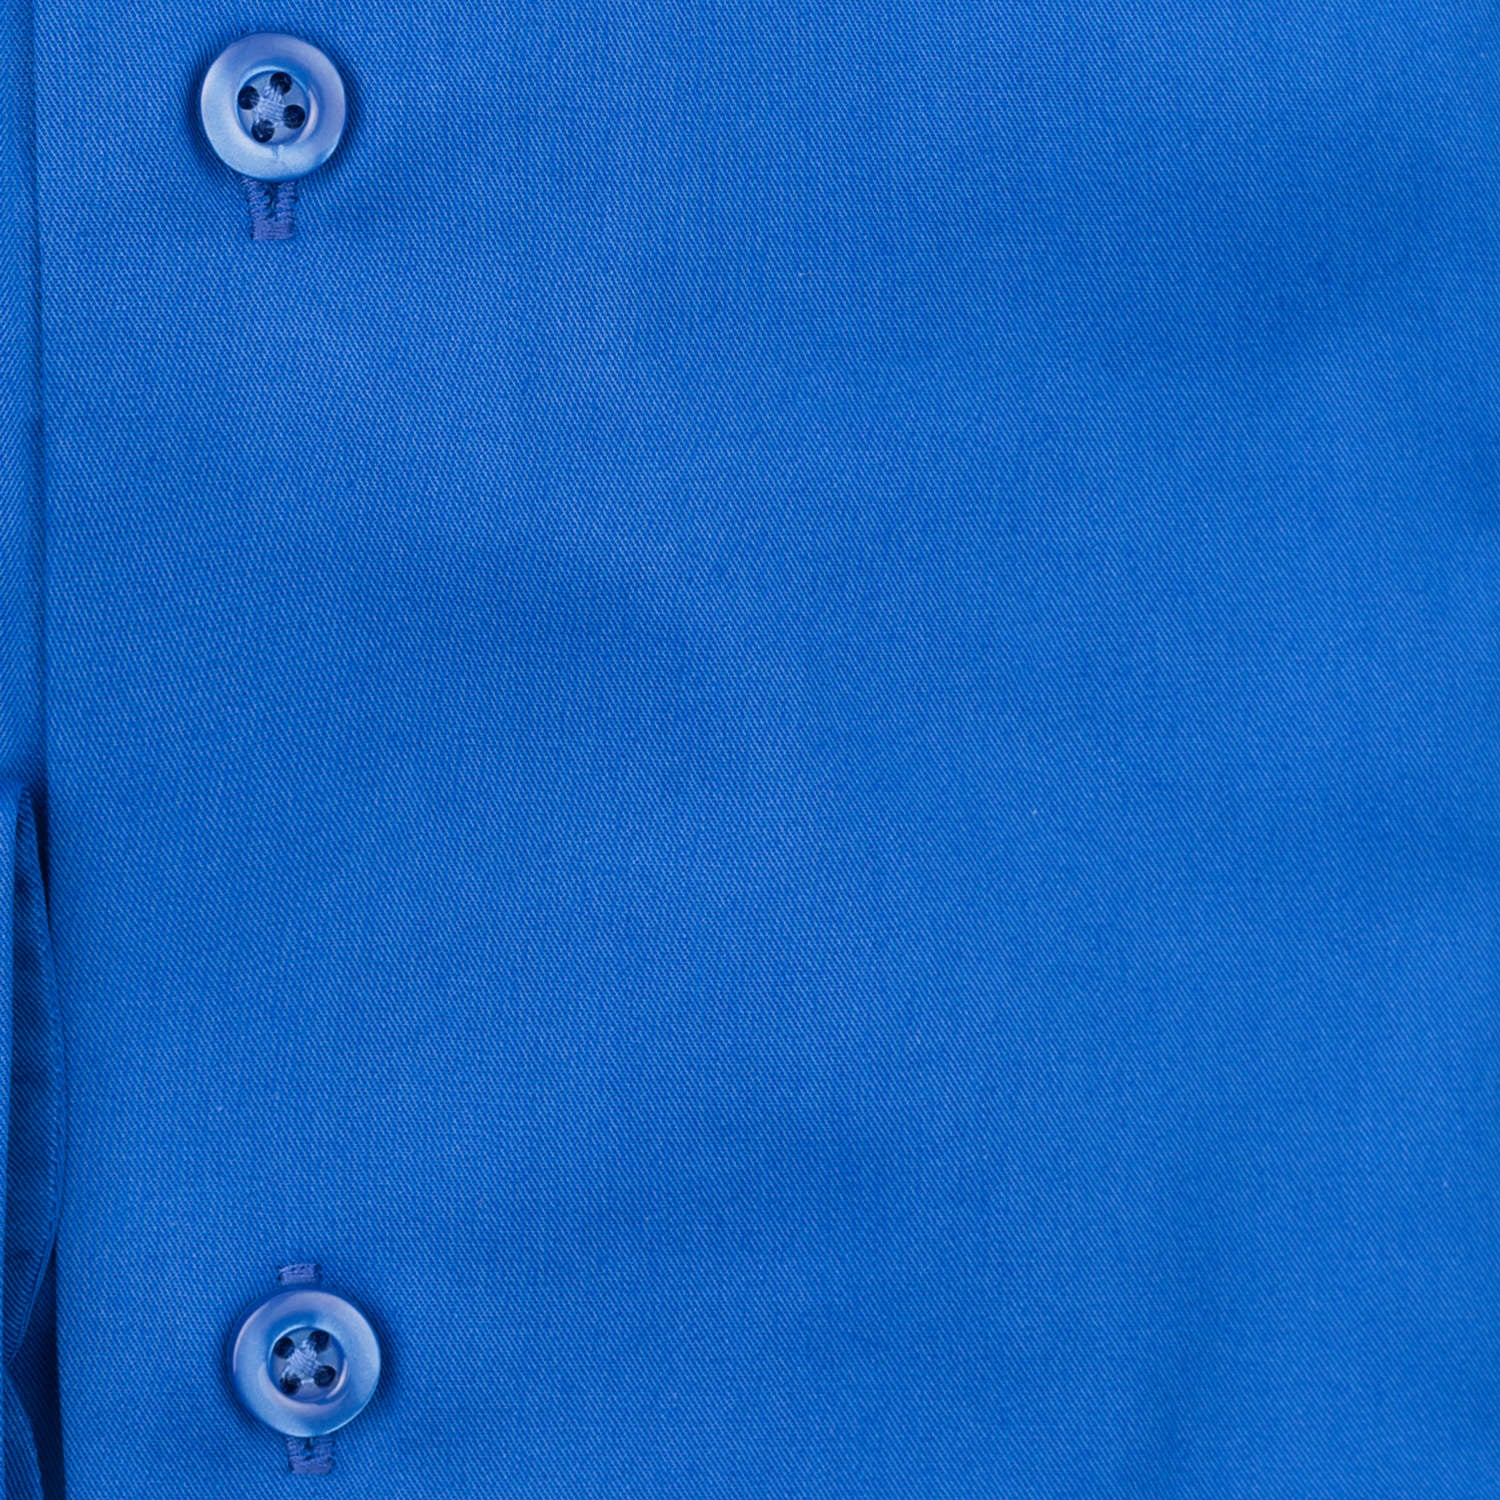 Bespoke - Cobalt Blue Tailored Shirt